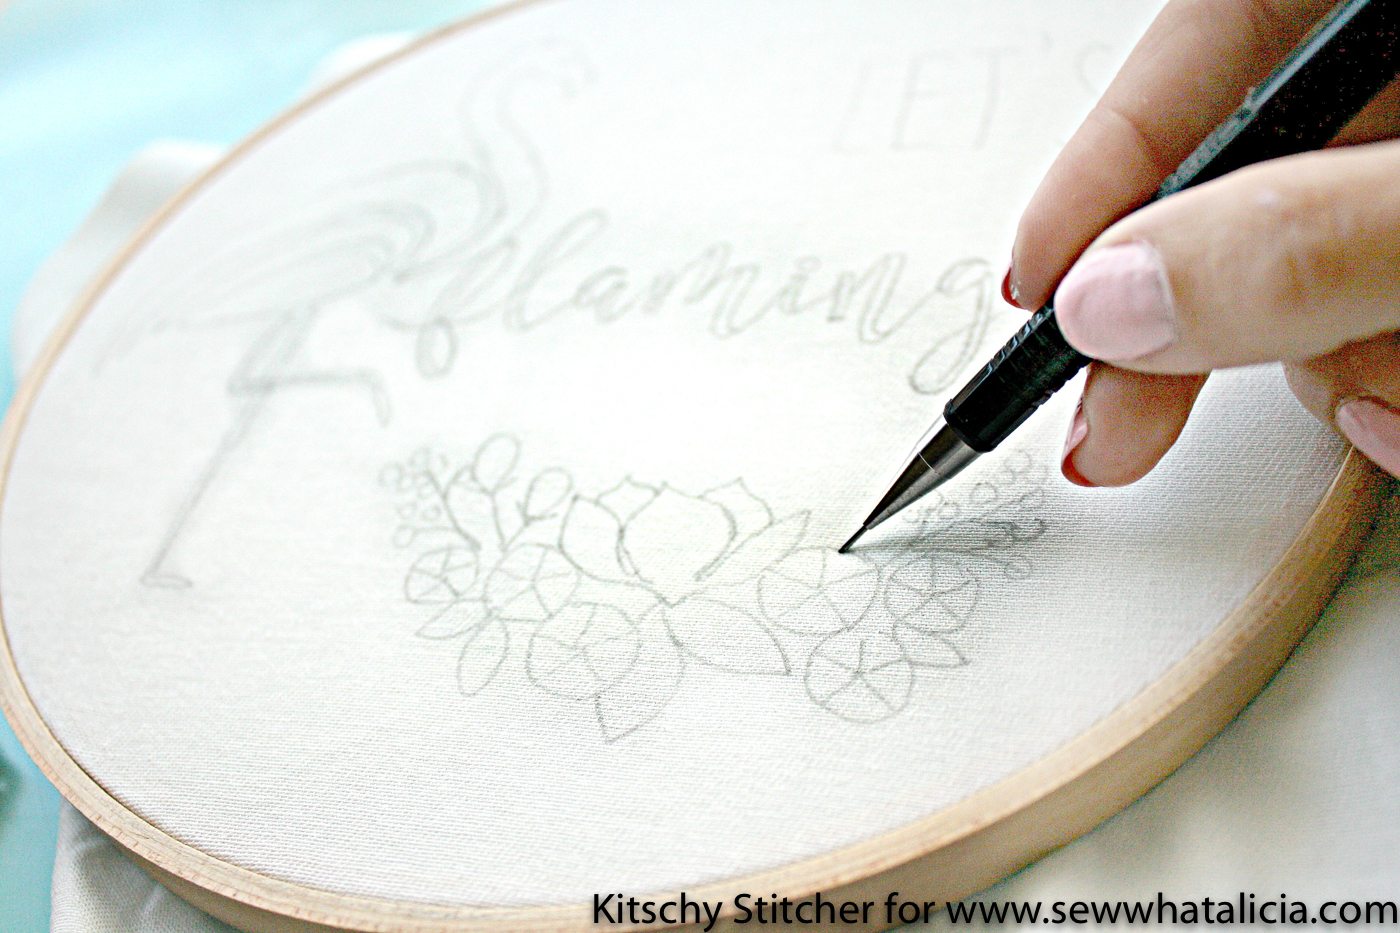 Embroidery How To With Kitschy Stitcher Sew What Alicia